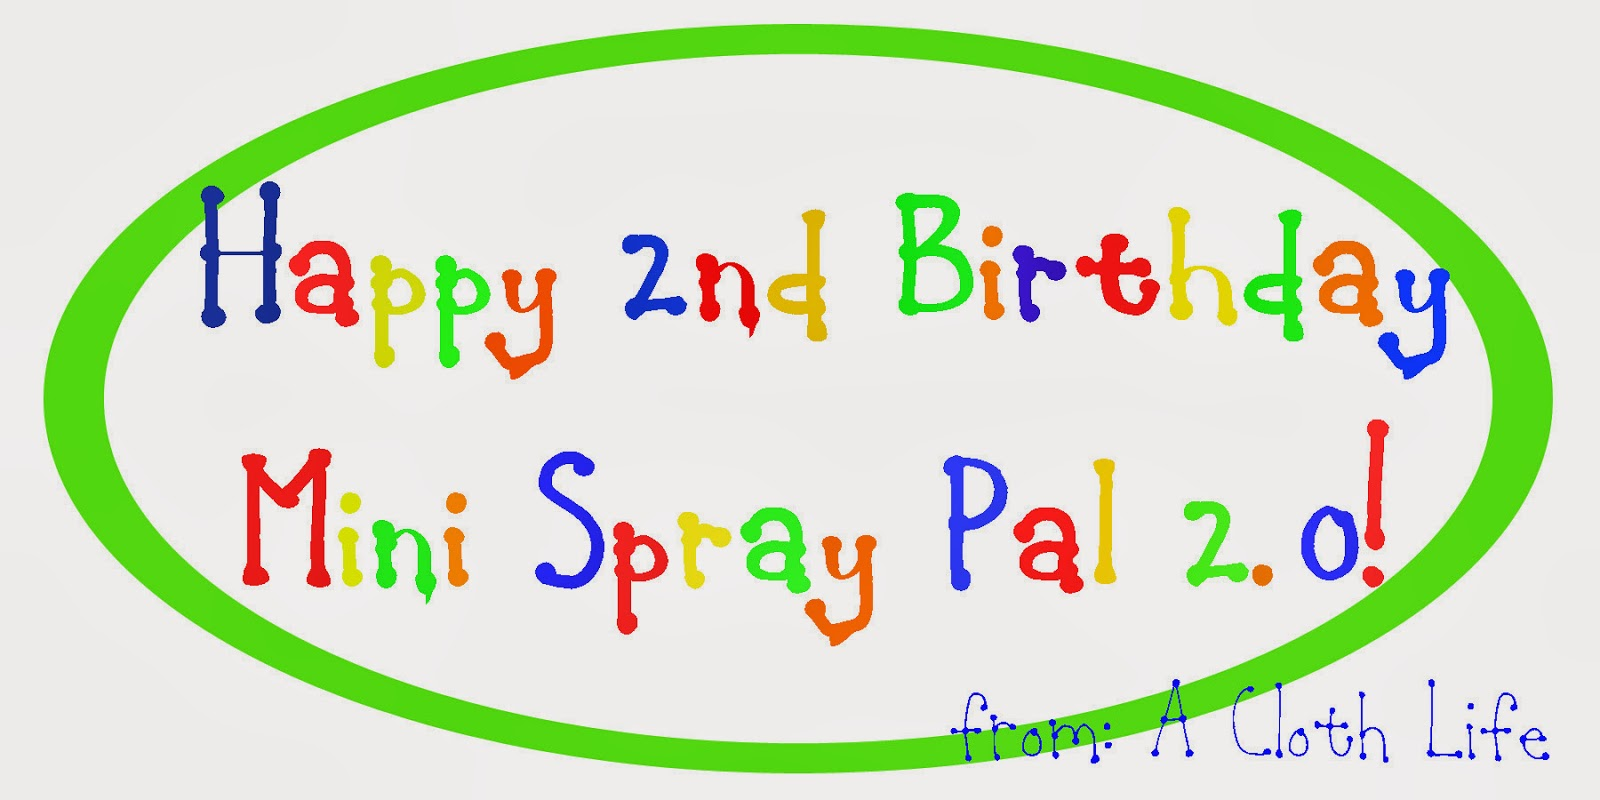 Spray Pal #miniSPbdaybash Giveaway